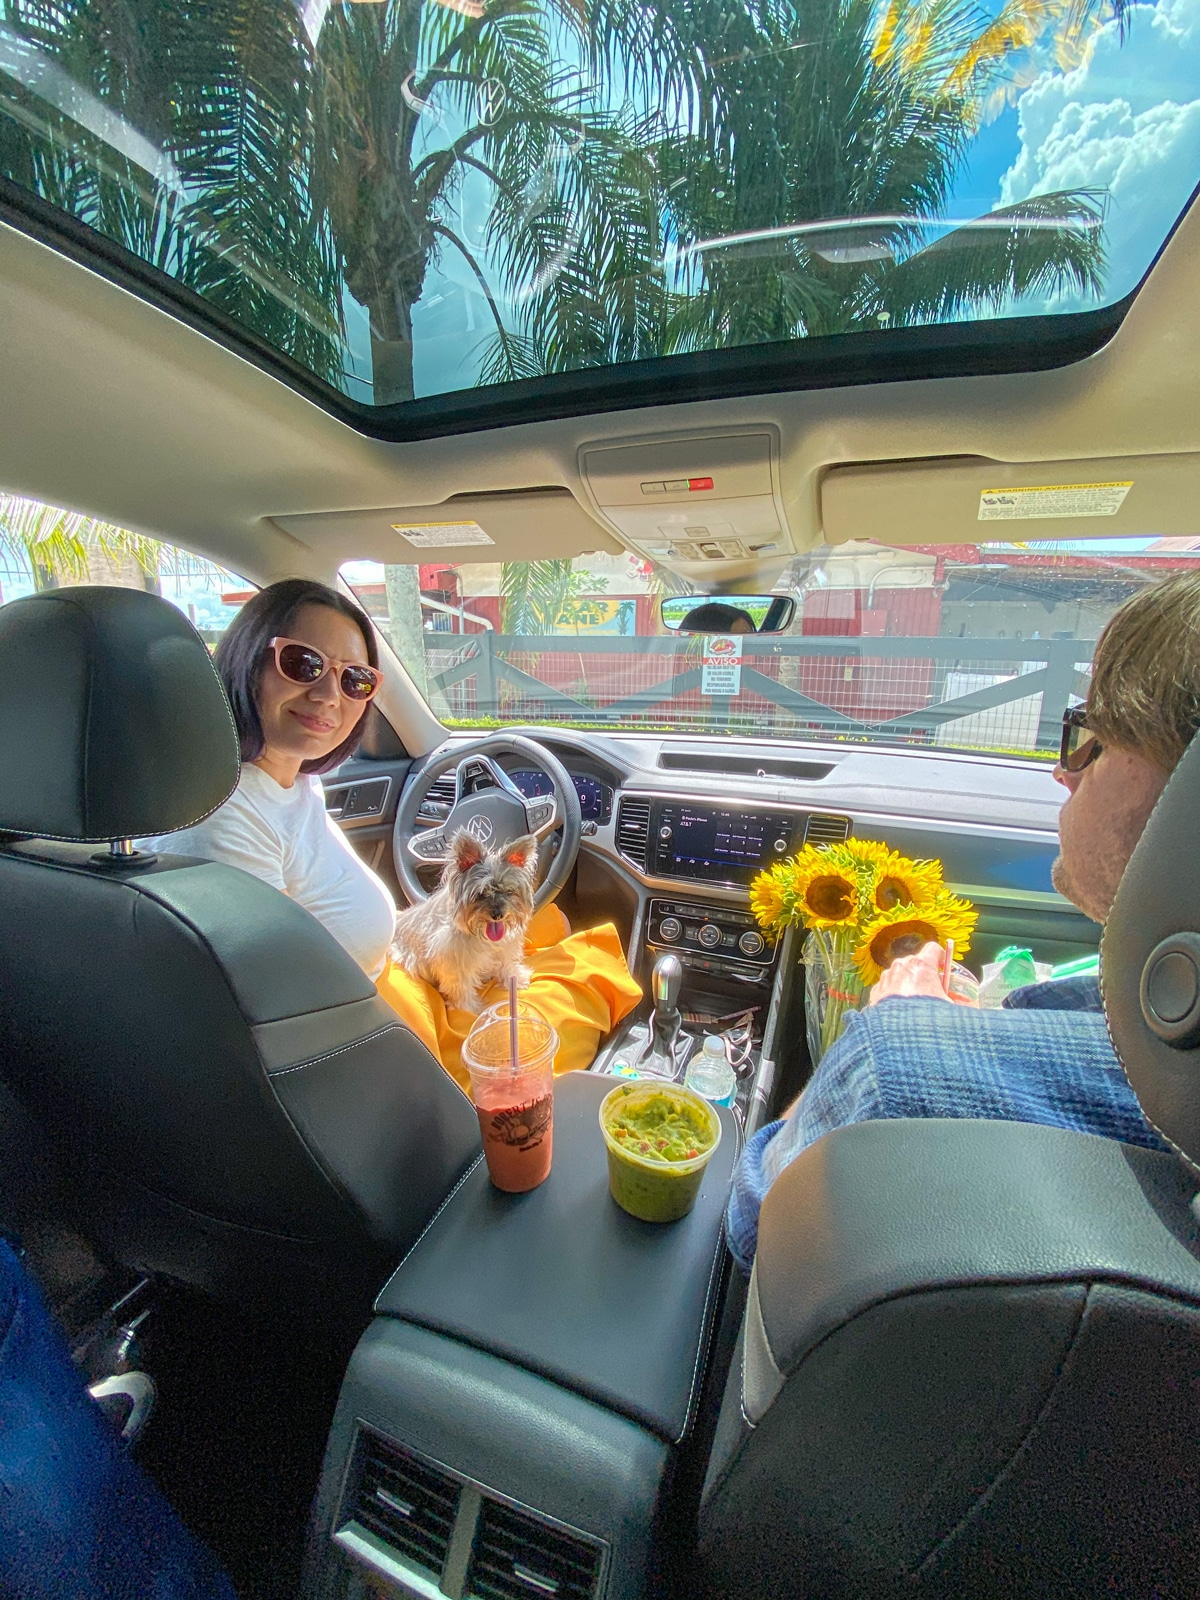 Fun Things To Do in Homestead, Florida - Have a car picnic at Robert Is Here fruit stand. Guacamole and chips with a fruit Milkshake